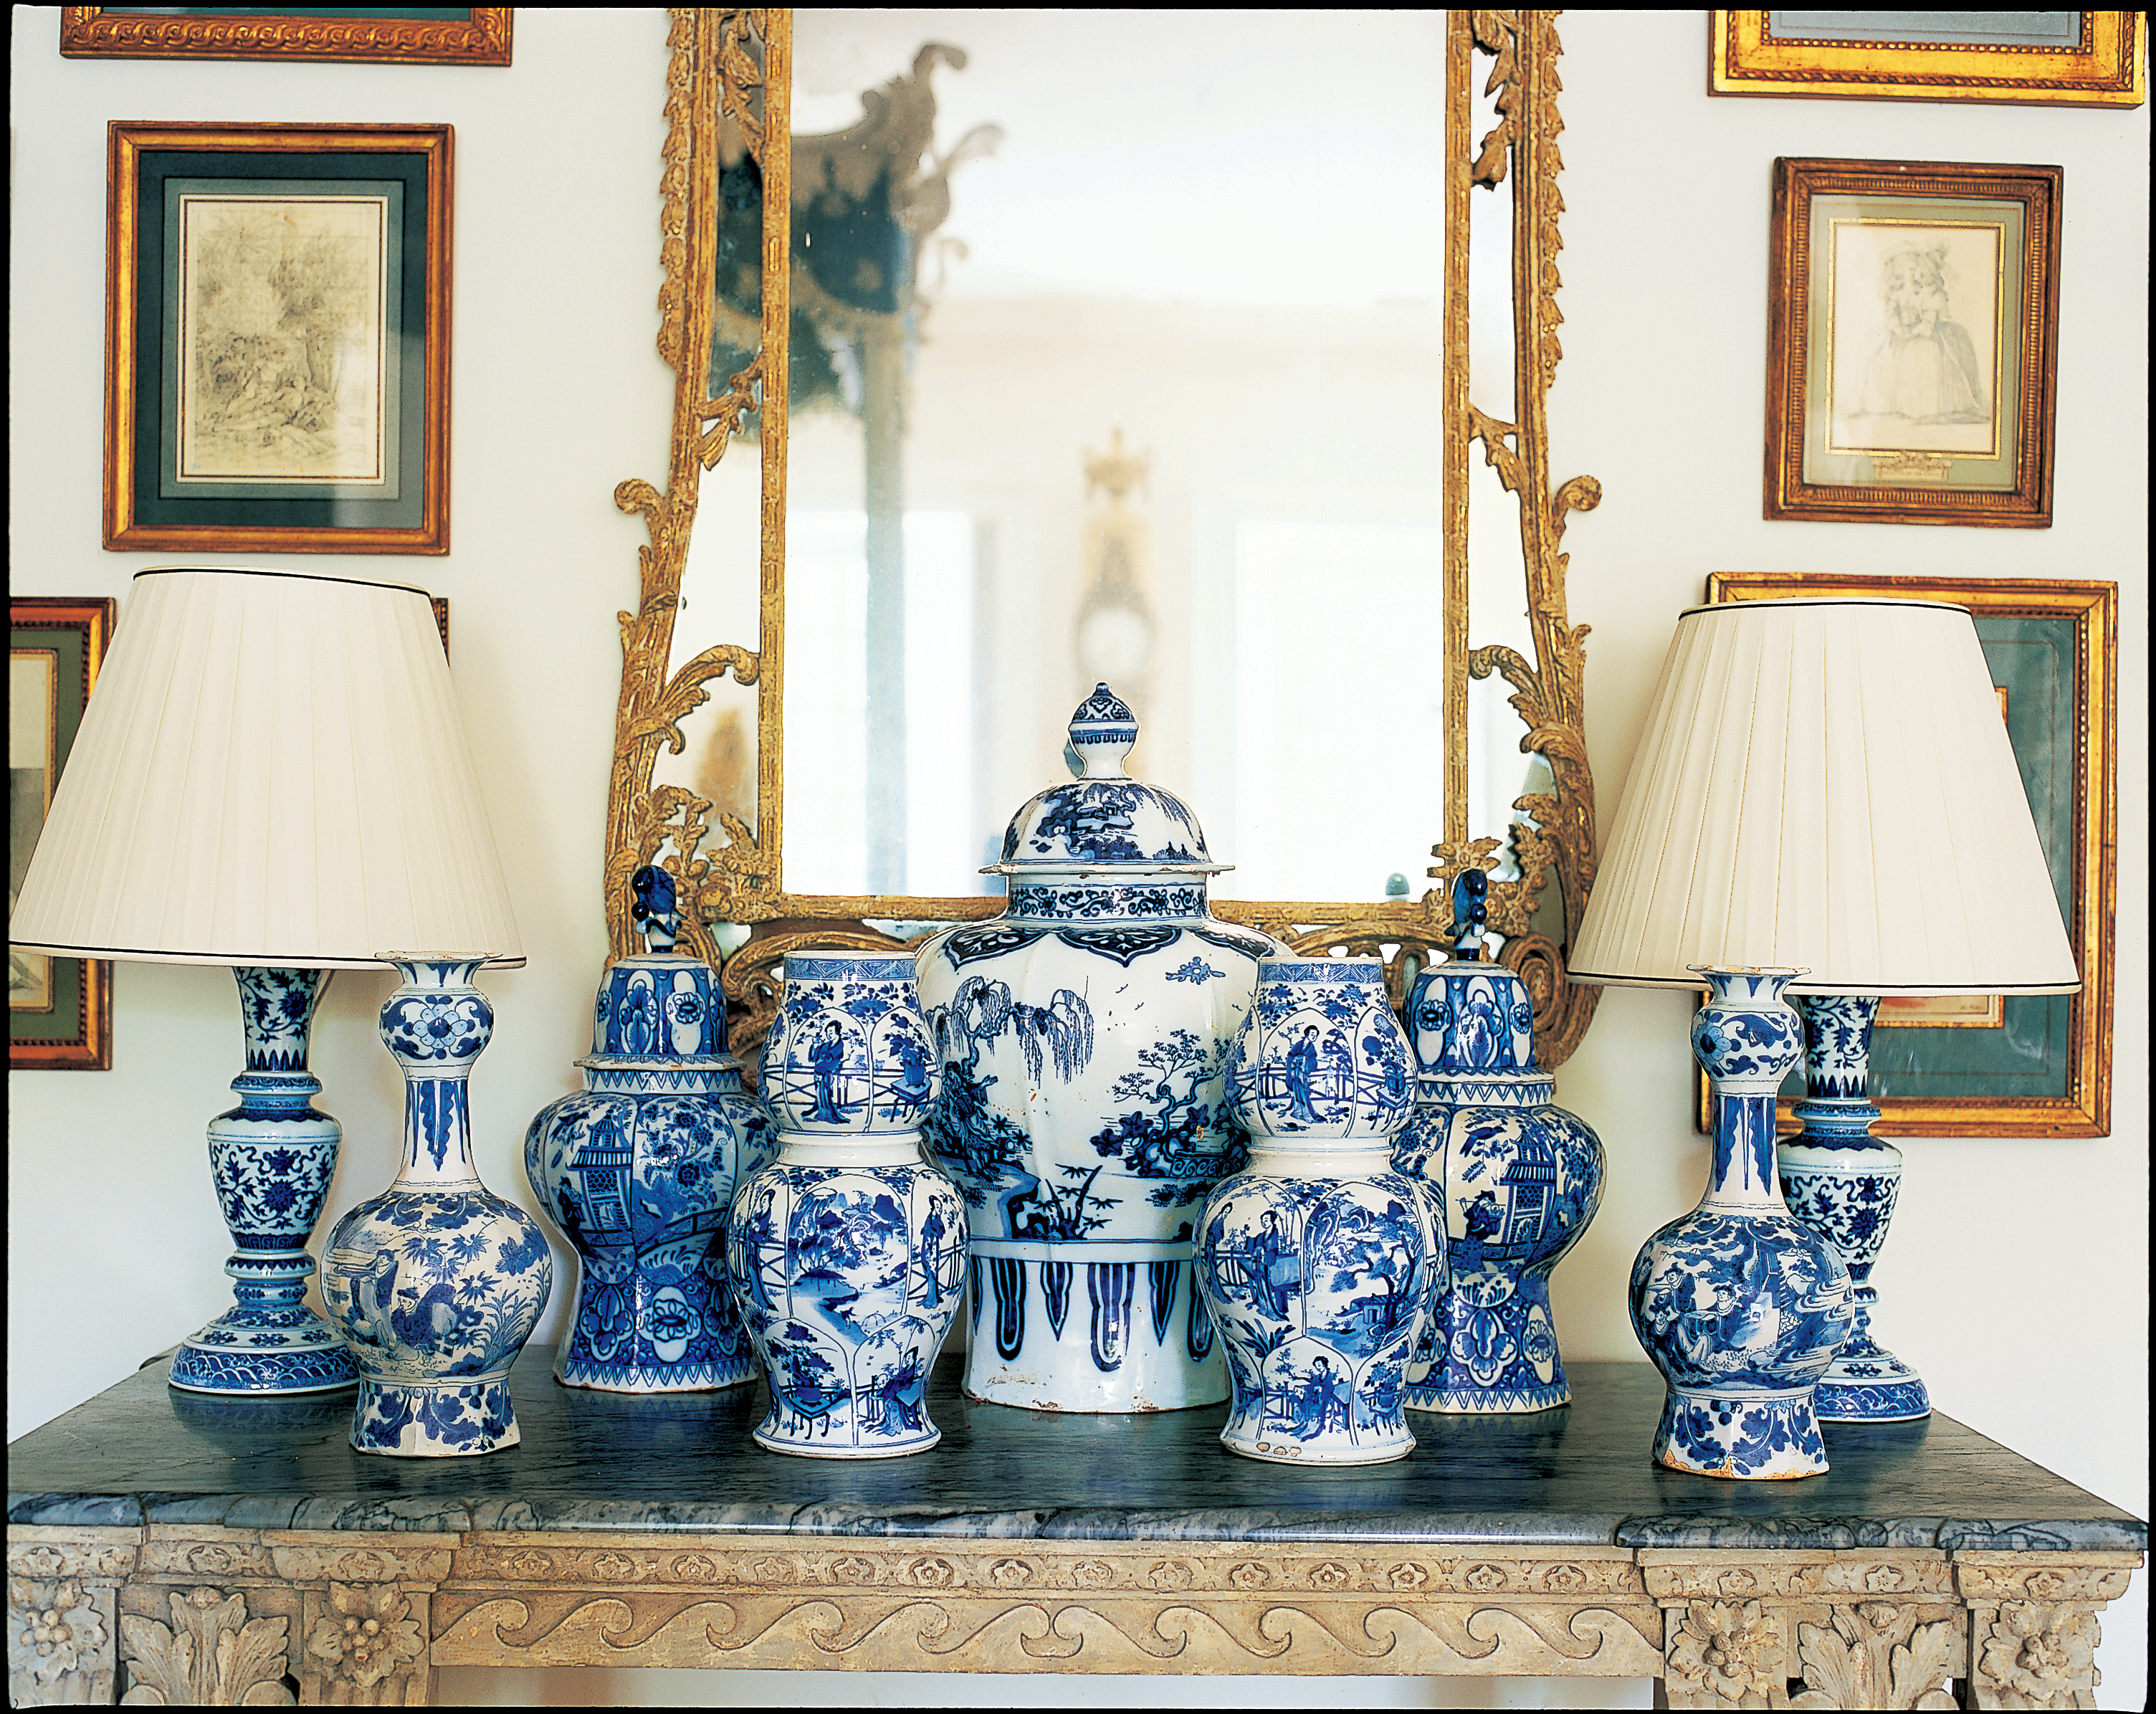 a passion for blue and white carolyne roehm 9780767921138 books. Black Bedroom Furniture Sets. Home Design Ideas